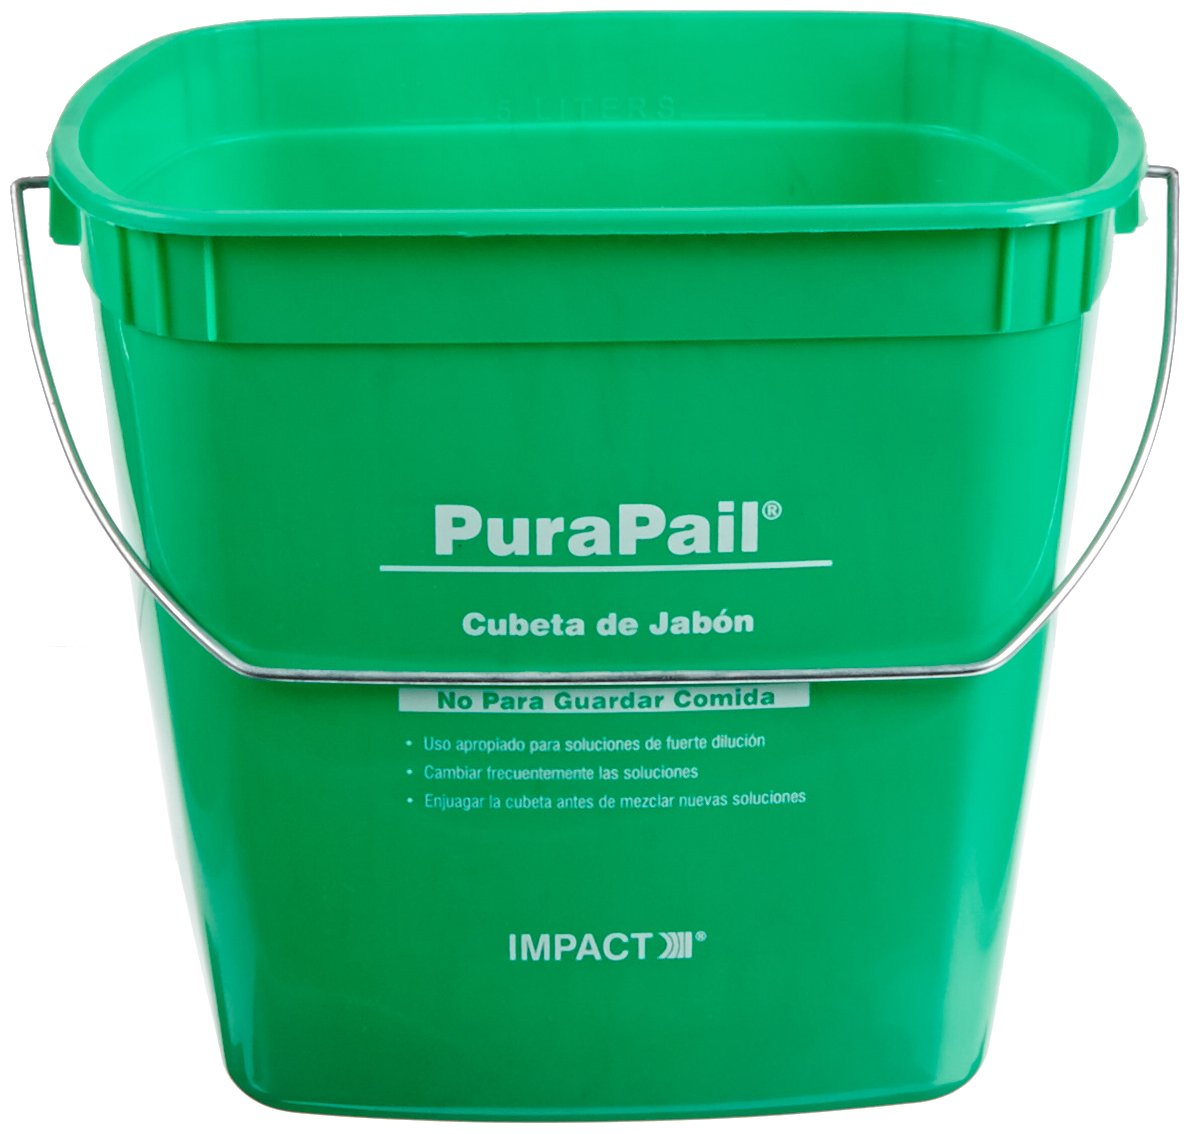 Impact 5506-14C Utility PuraPail Cleaning Bucket, 6 qt Capacity, 7-1/2'' Length x 9'' Width x 7'' Height, Green (Case of 12)